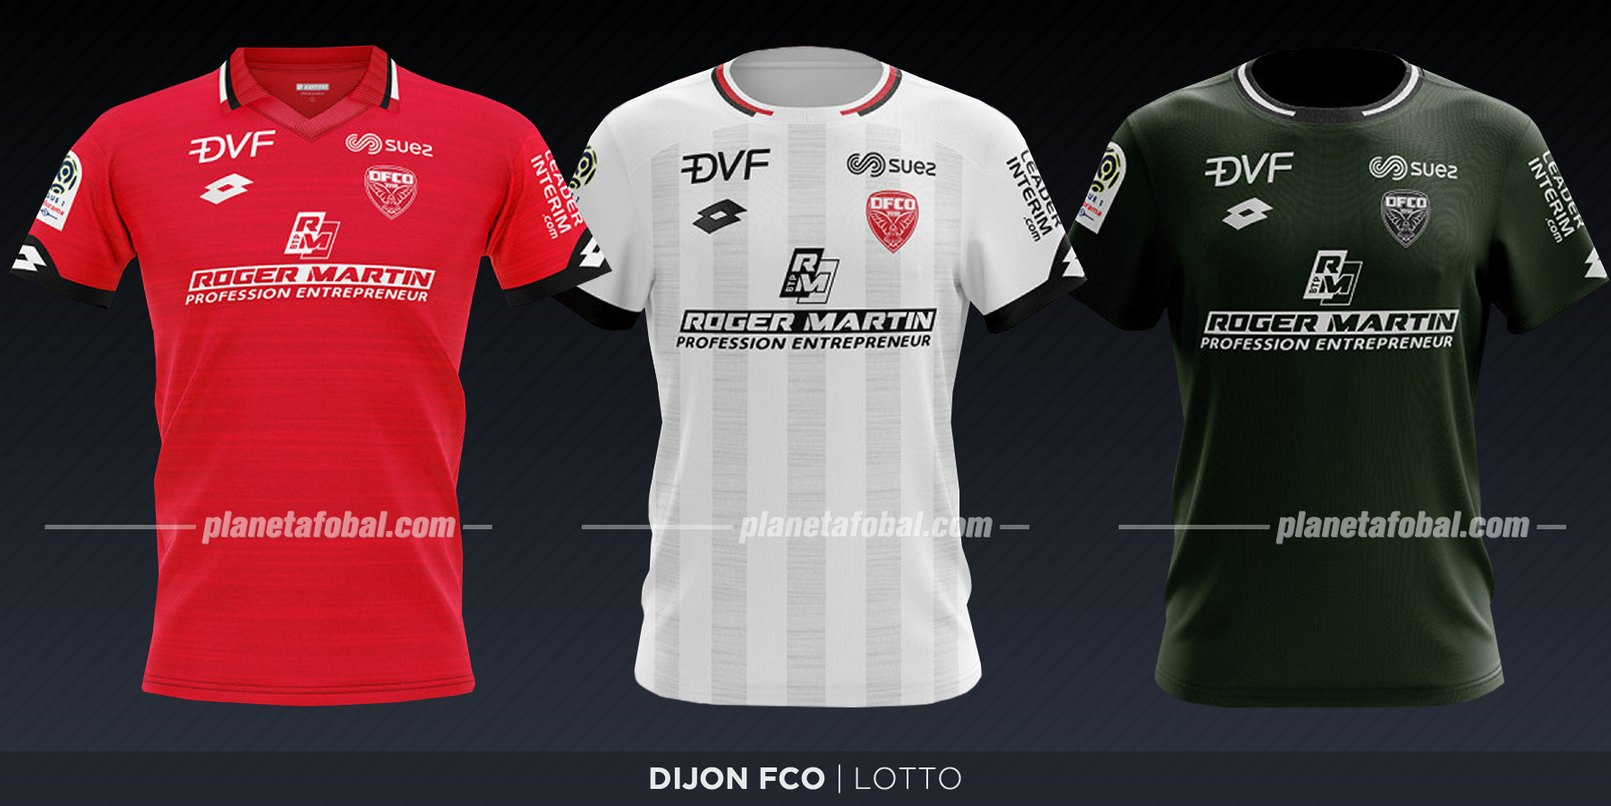 Dijon FCO (Lotto) | Camisetas de la Ligue 1 2019-2020